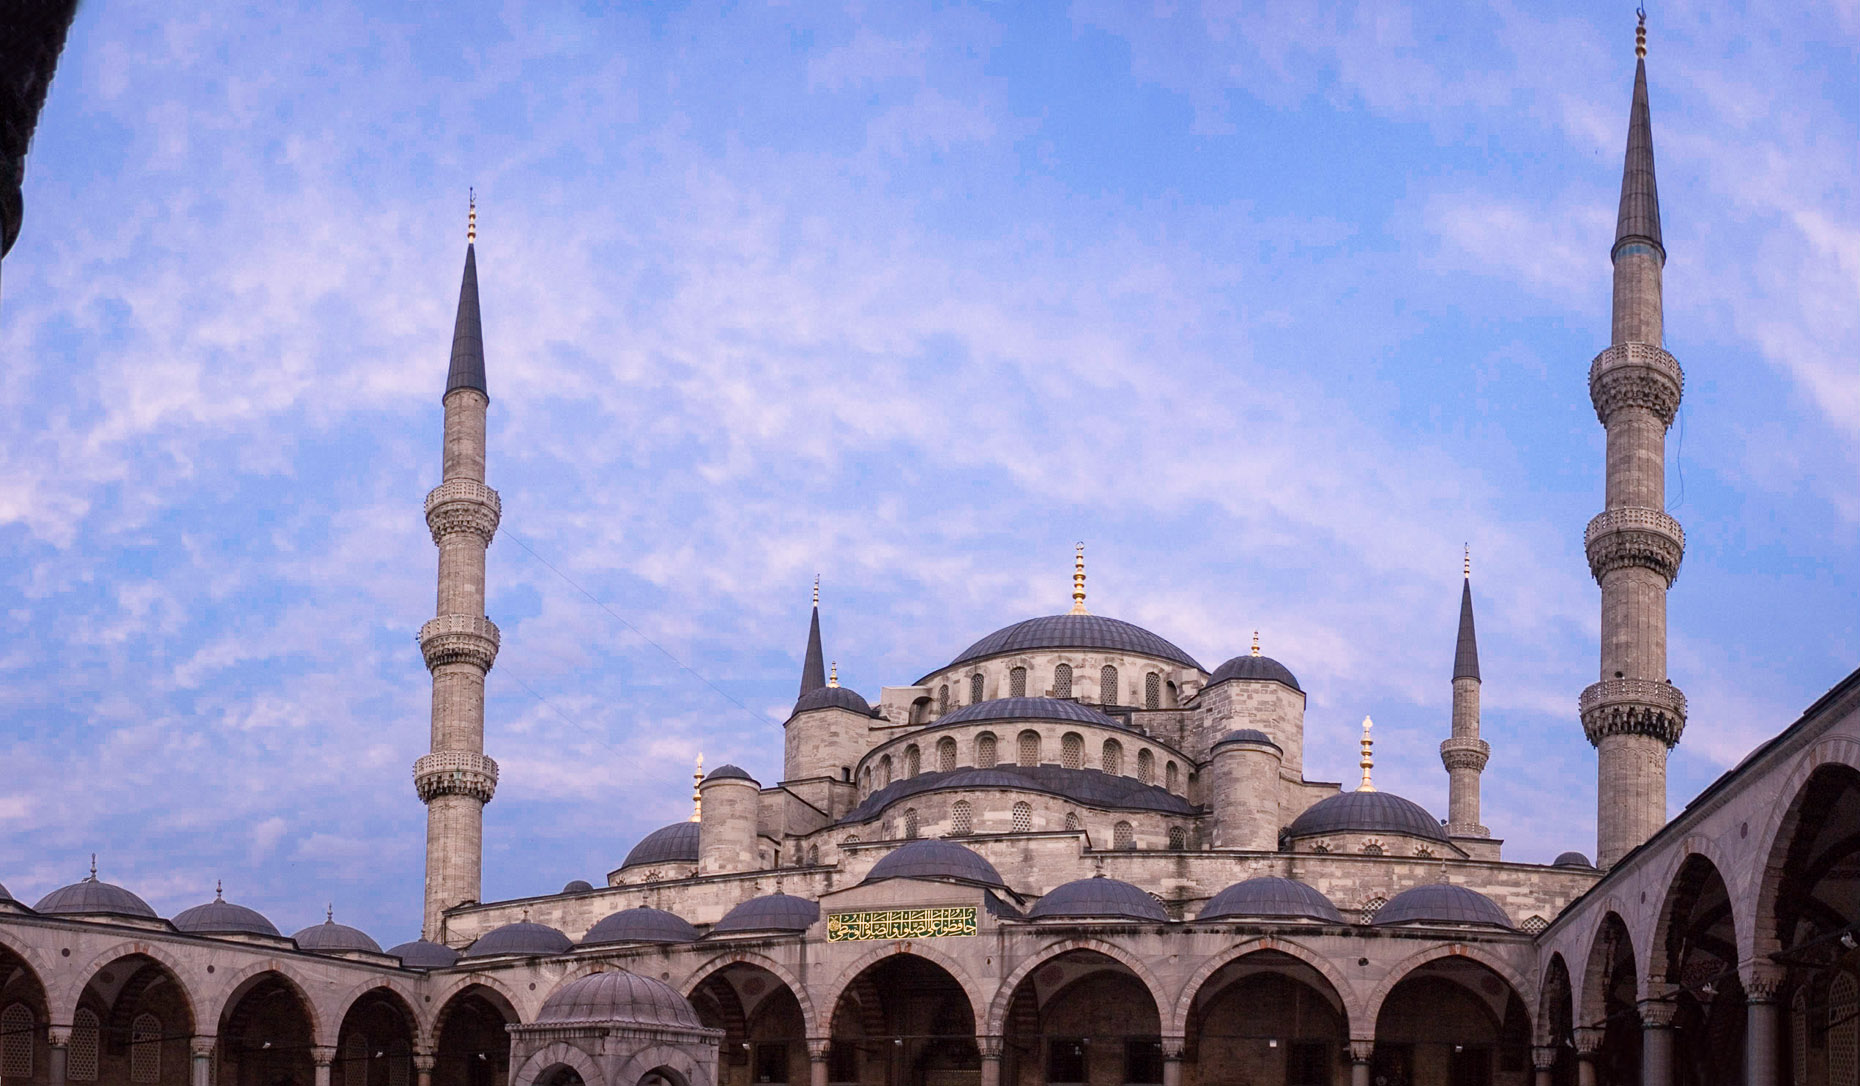 Panoramic of Blue Mosque in Istanbul Turkey at sunset.